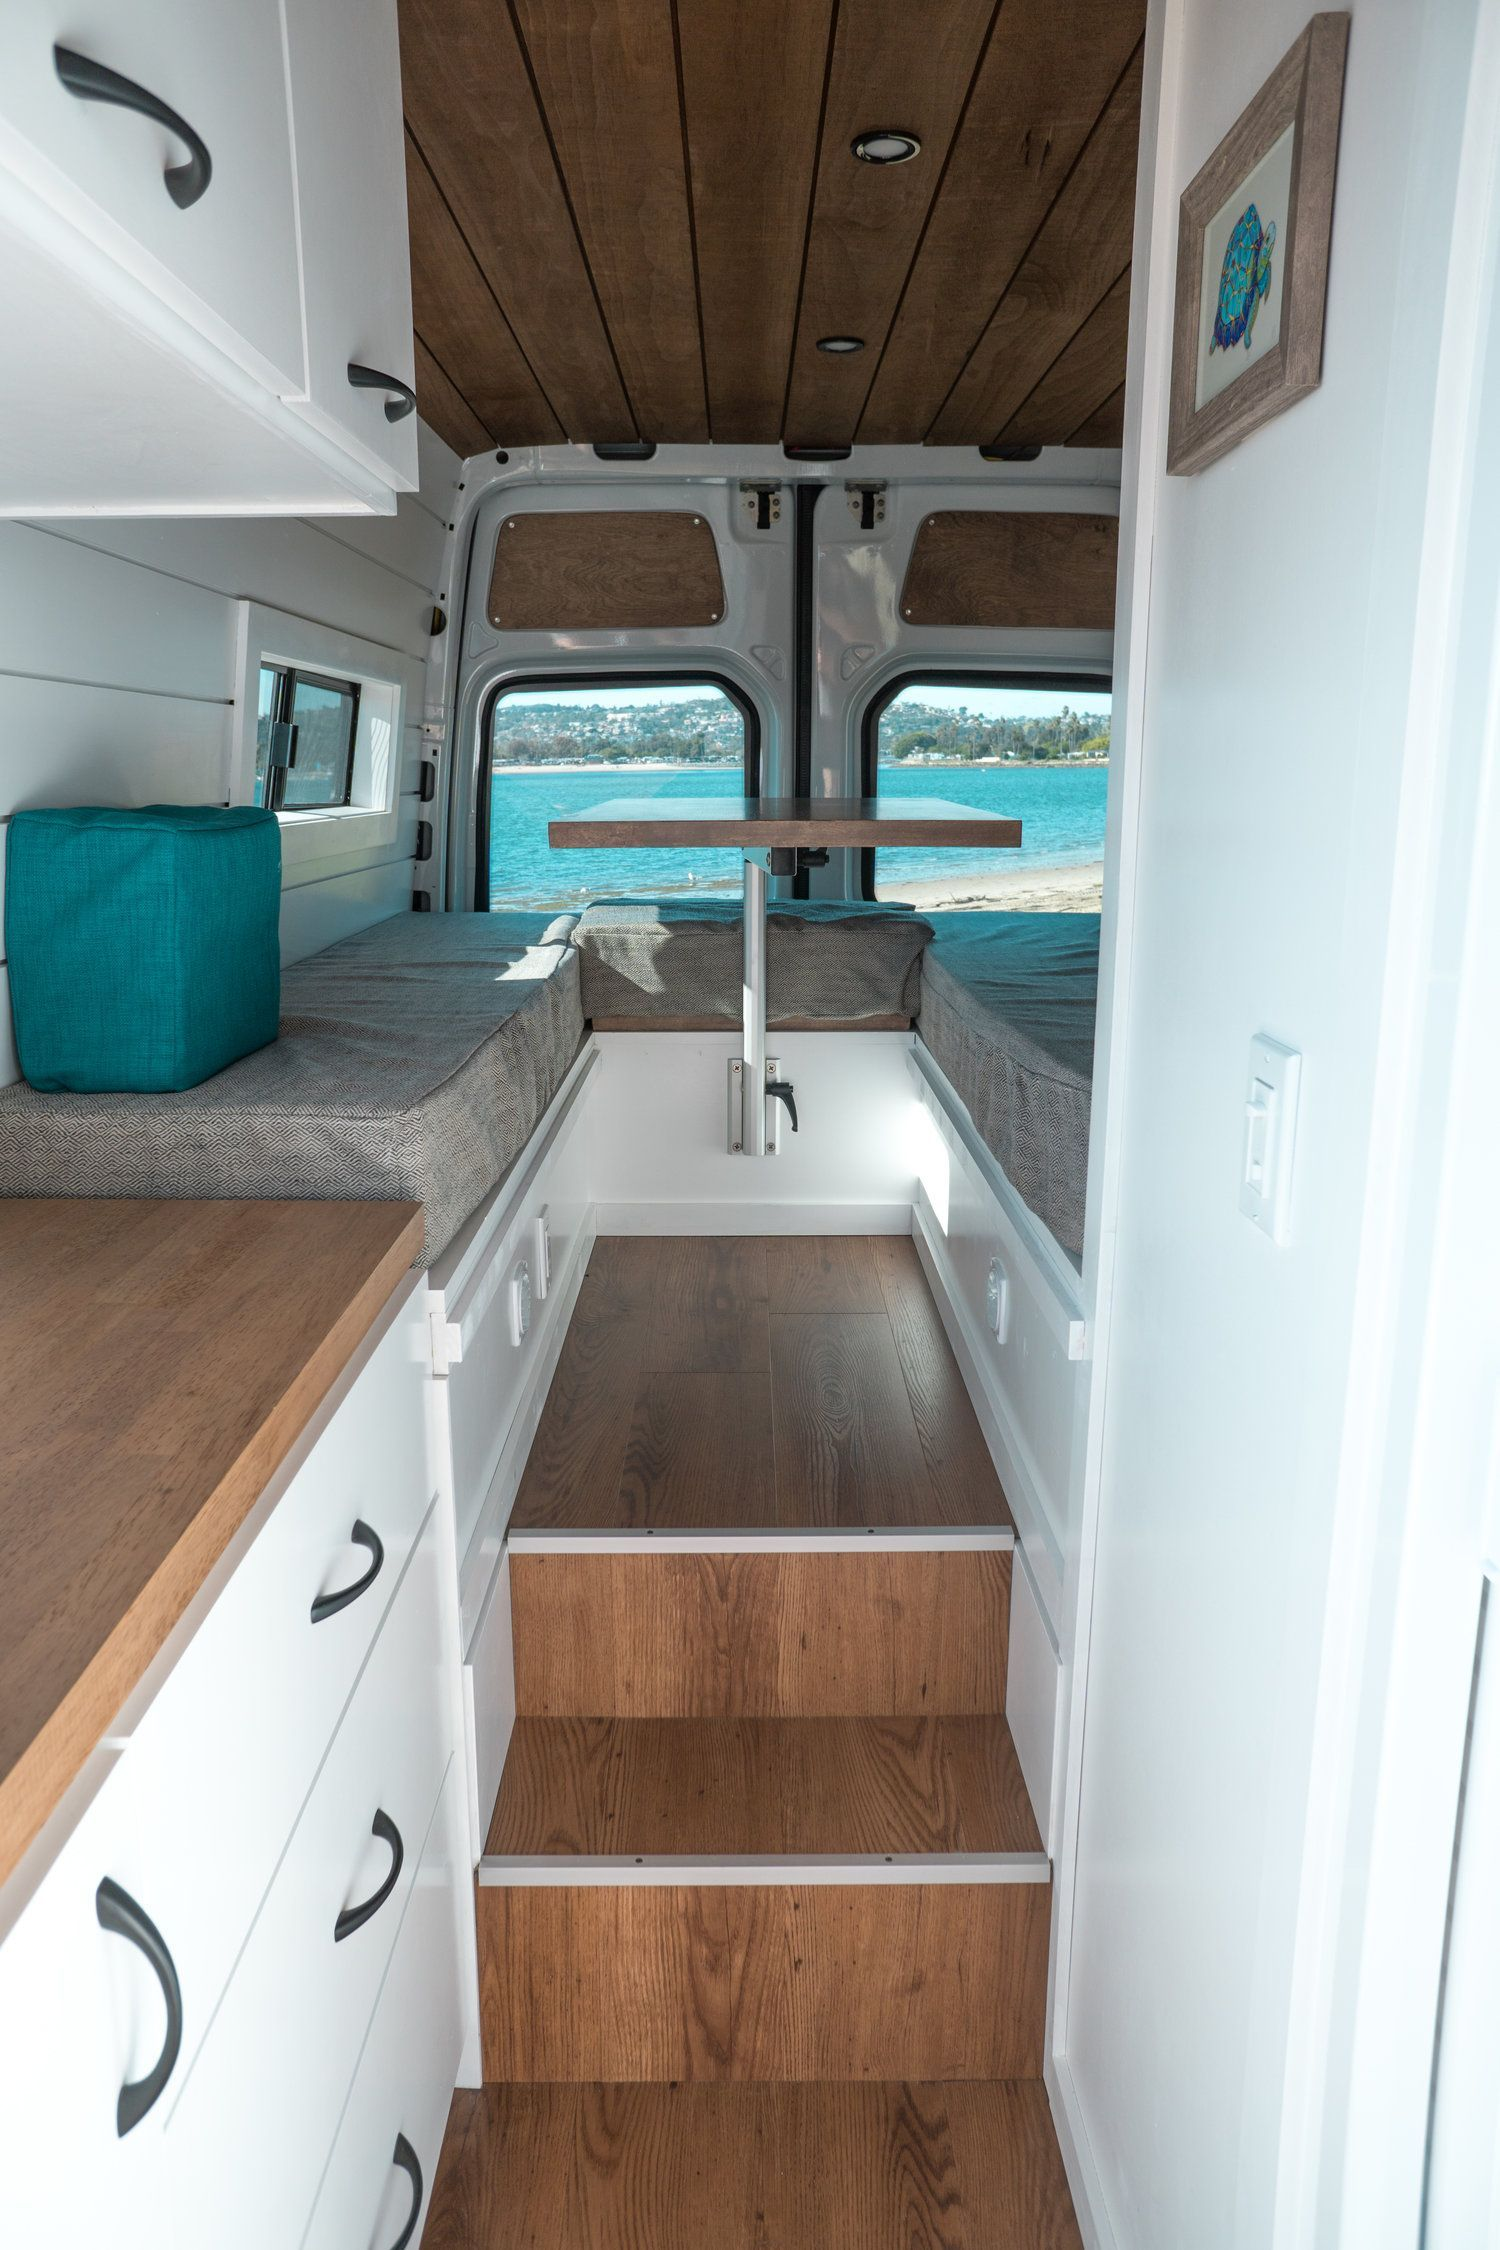 Photo of OUR VAN BUILD WORK | Mercedes Sprinter Van Conversion with Bathroom & Mini Garag…